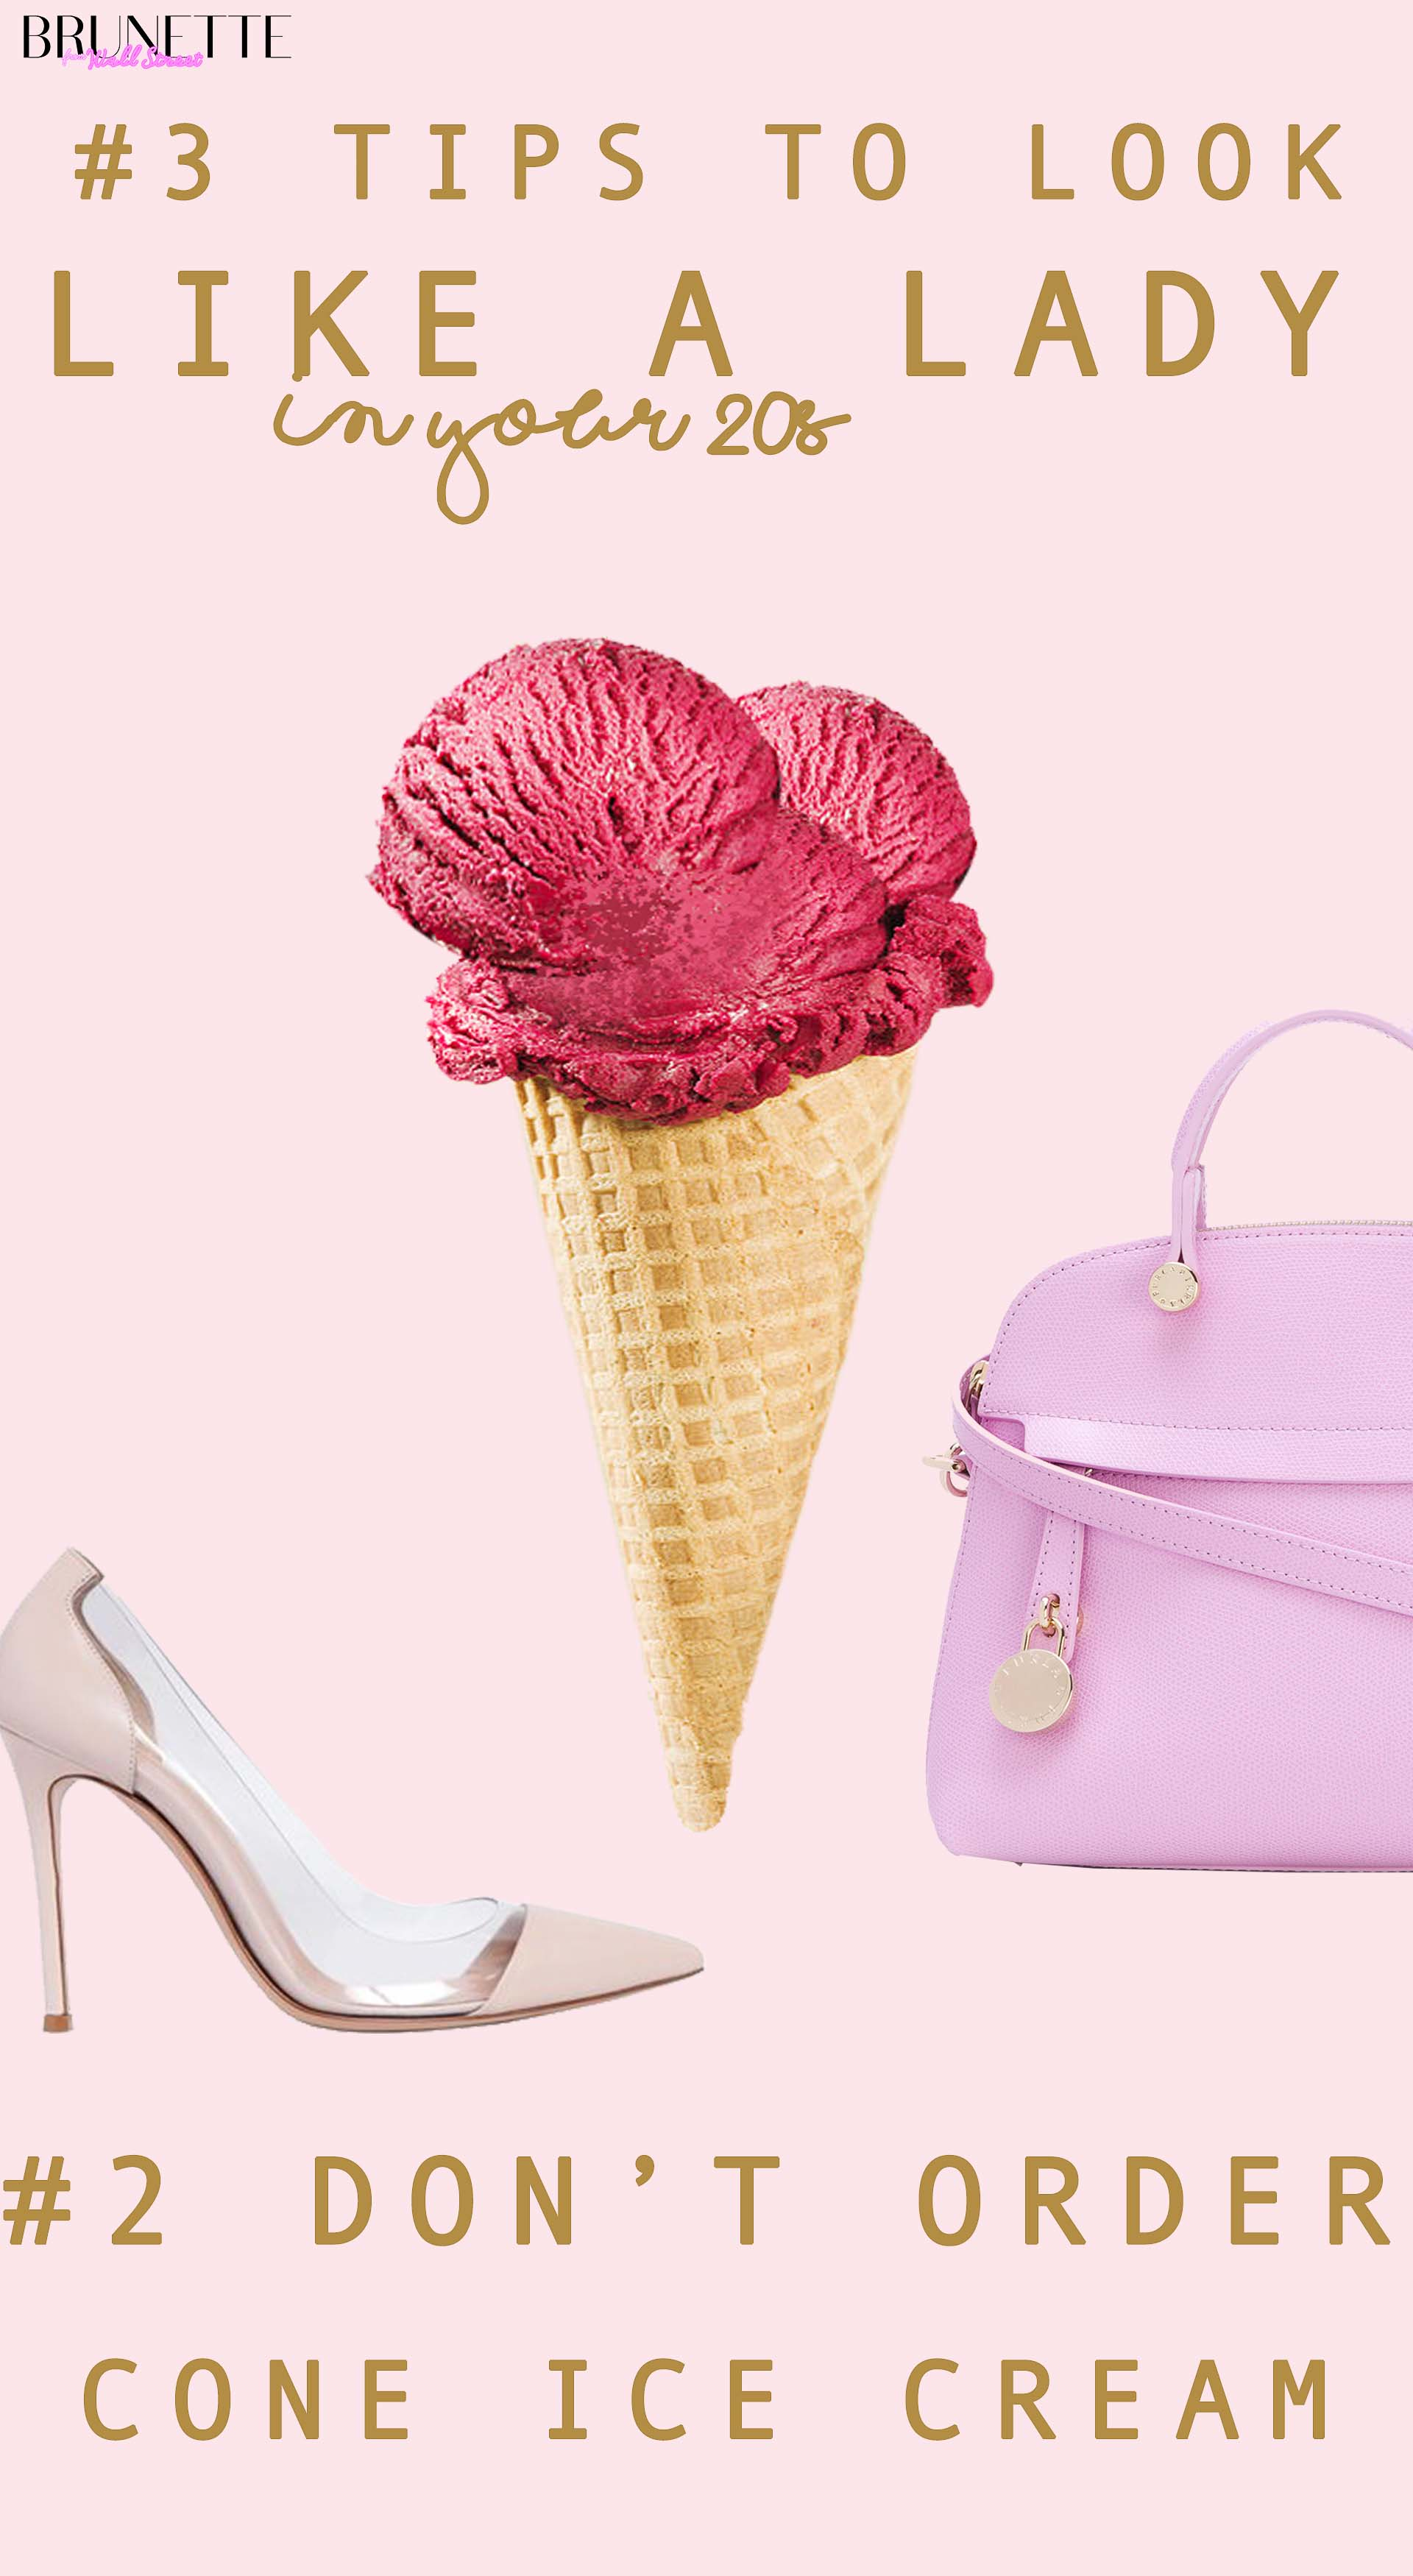 raspberry ice cream cone, Furla lavender bag, Gianvito Rossi pumps with text overlay #3 tips to look like a lady in your 20s #2 don't order cone ice cream